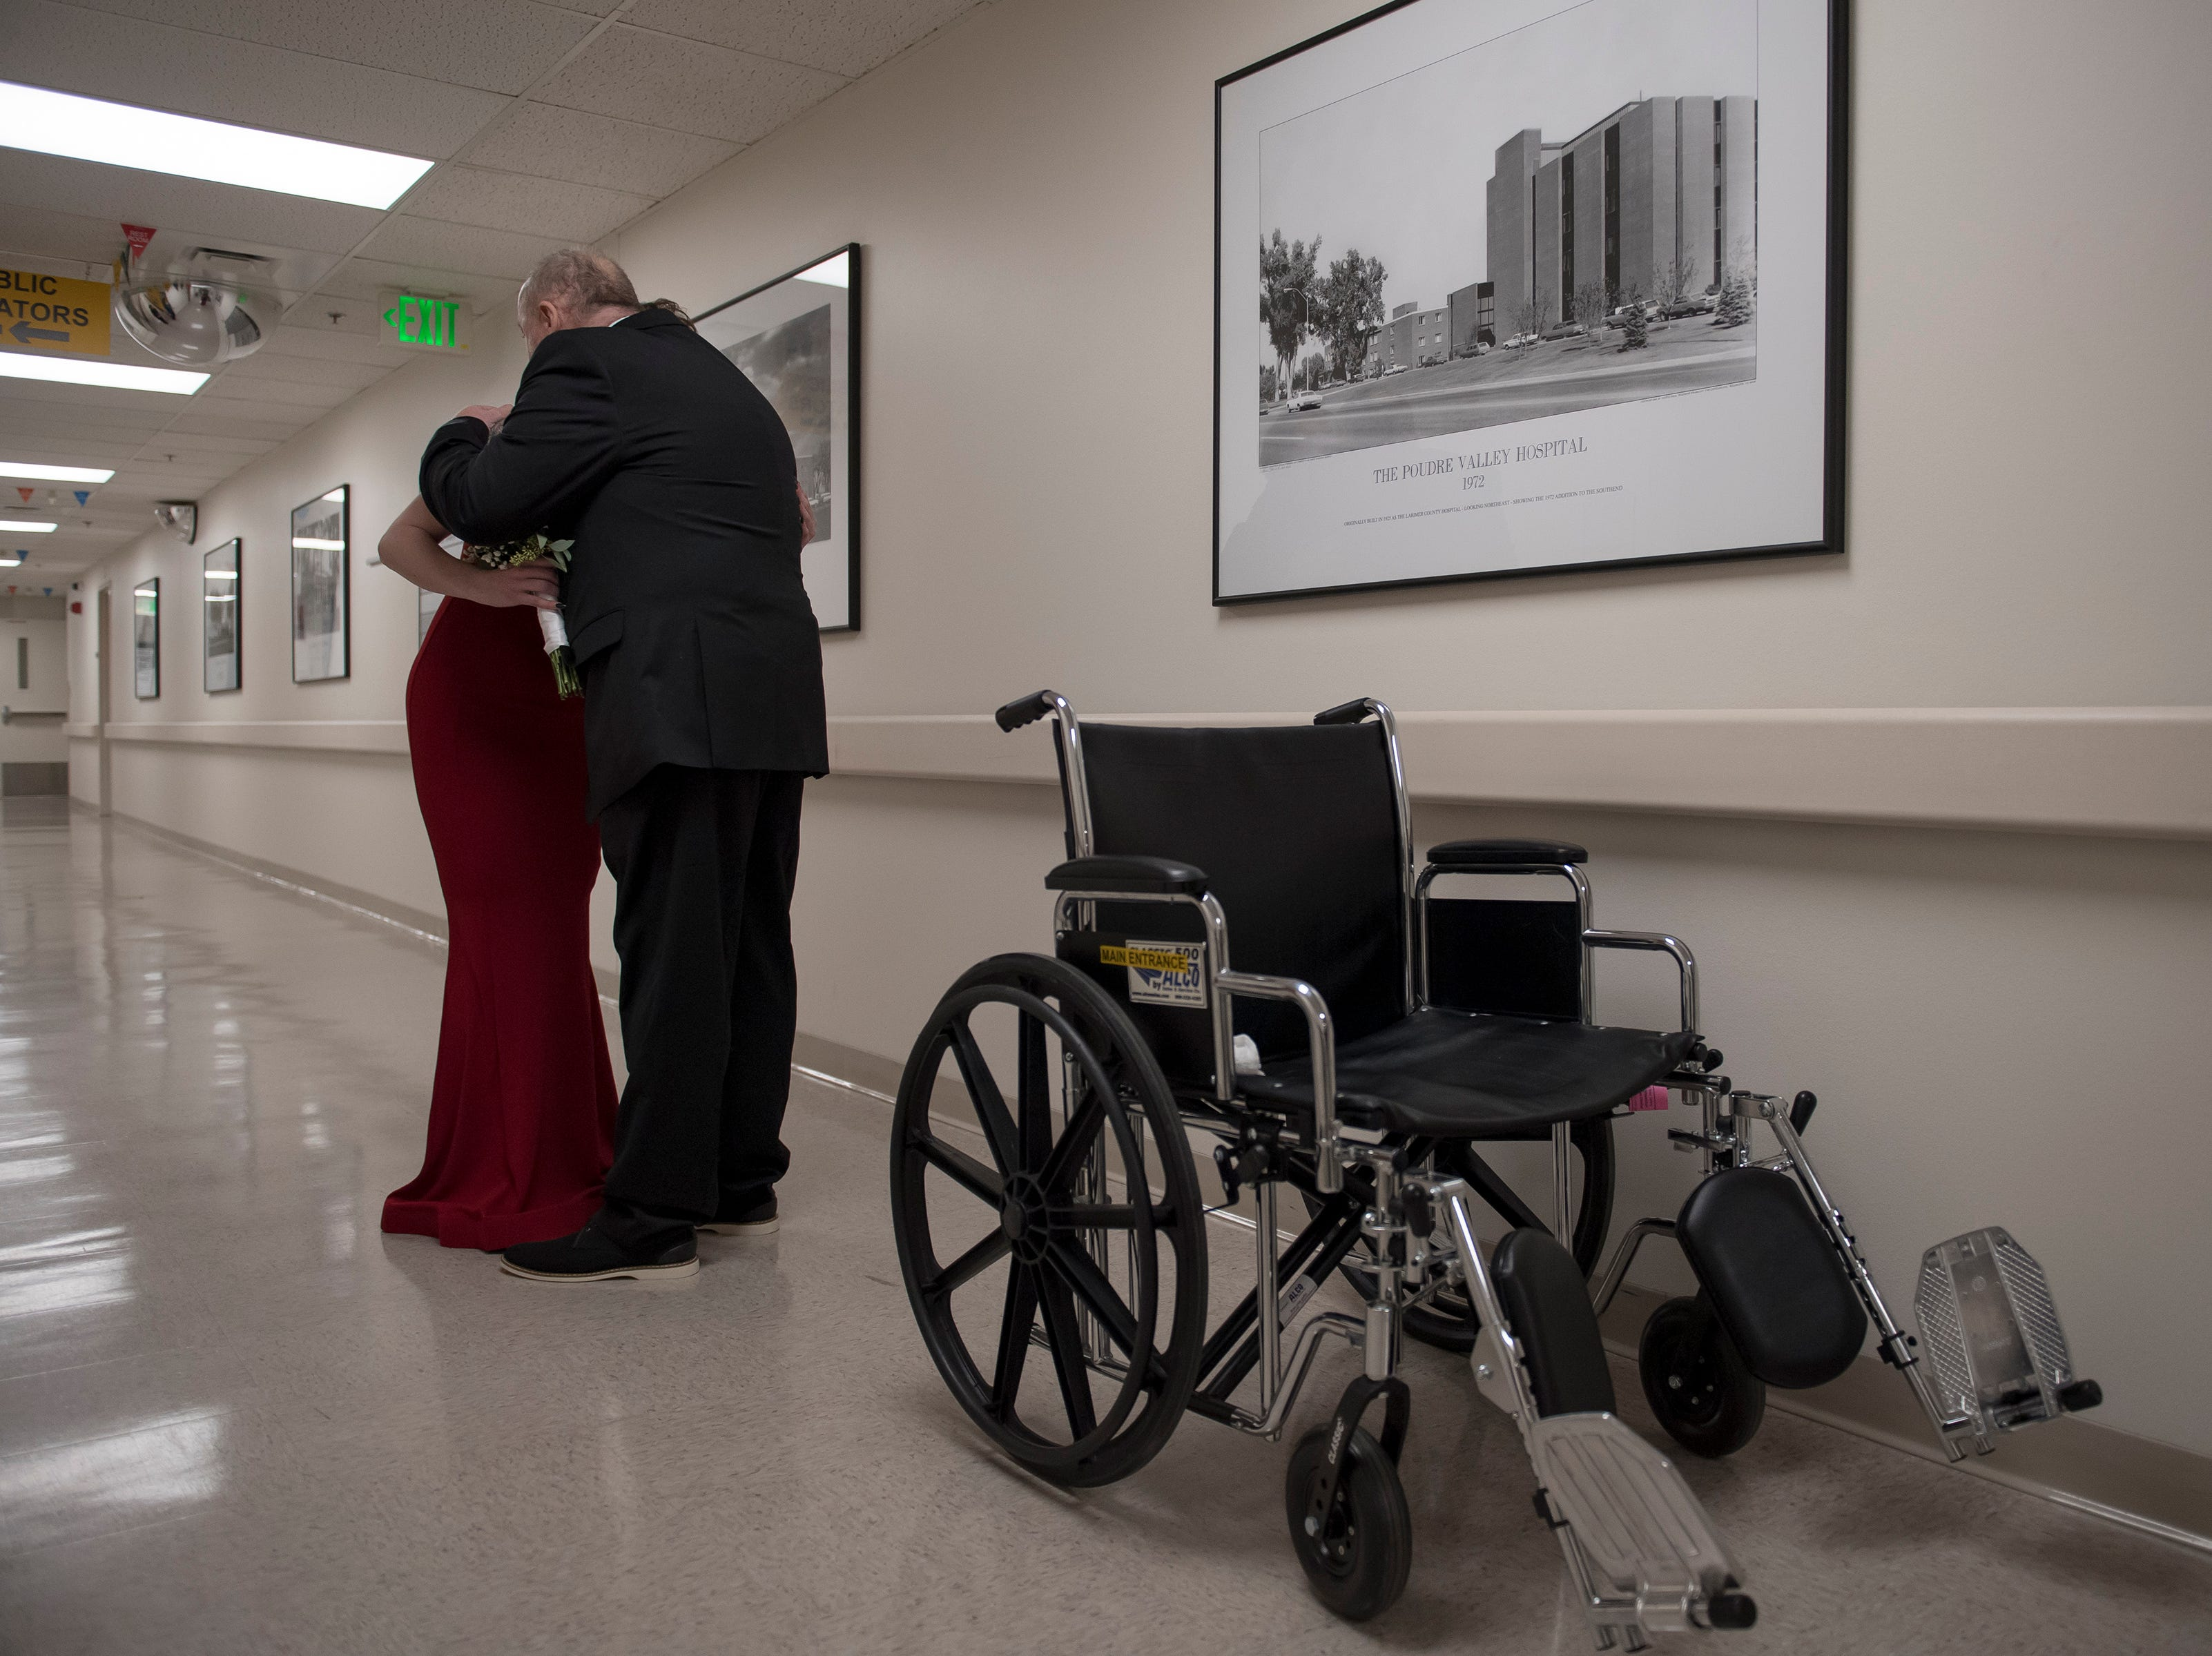 Father of the bride Paul Justice hugs his daughter Grace Justice before walking her down the hallway to the chapel on Thursday, Feb. 14, 2019, at UCHealth Poudre Valley Hospital in Fort Collins, Colo.